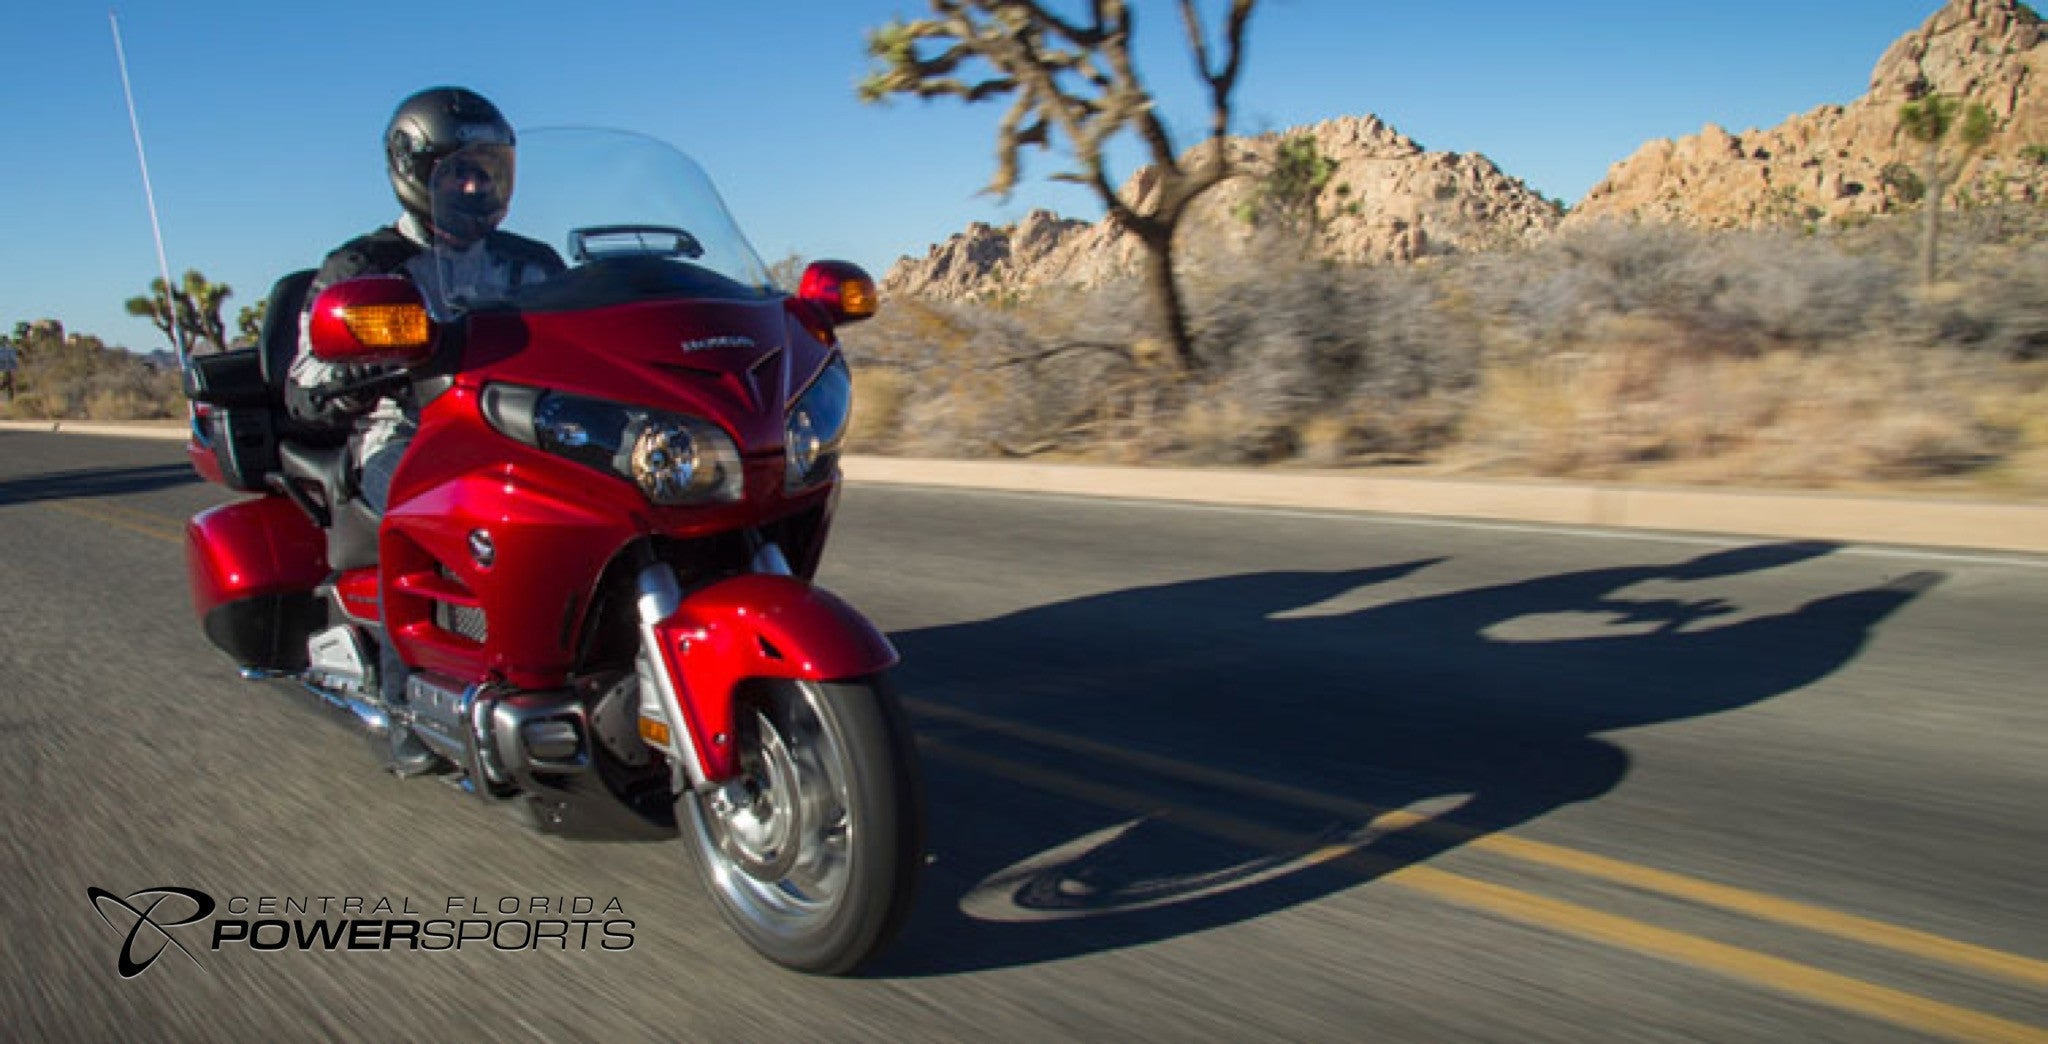 gw ab honda img sale in for world calgary cycle goldwing aspencade htm inventory